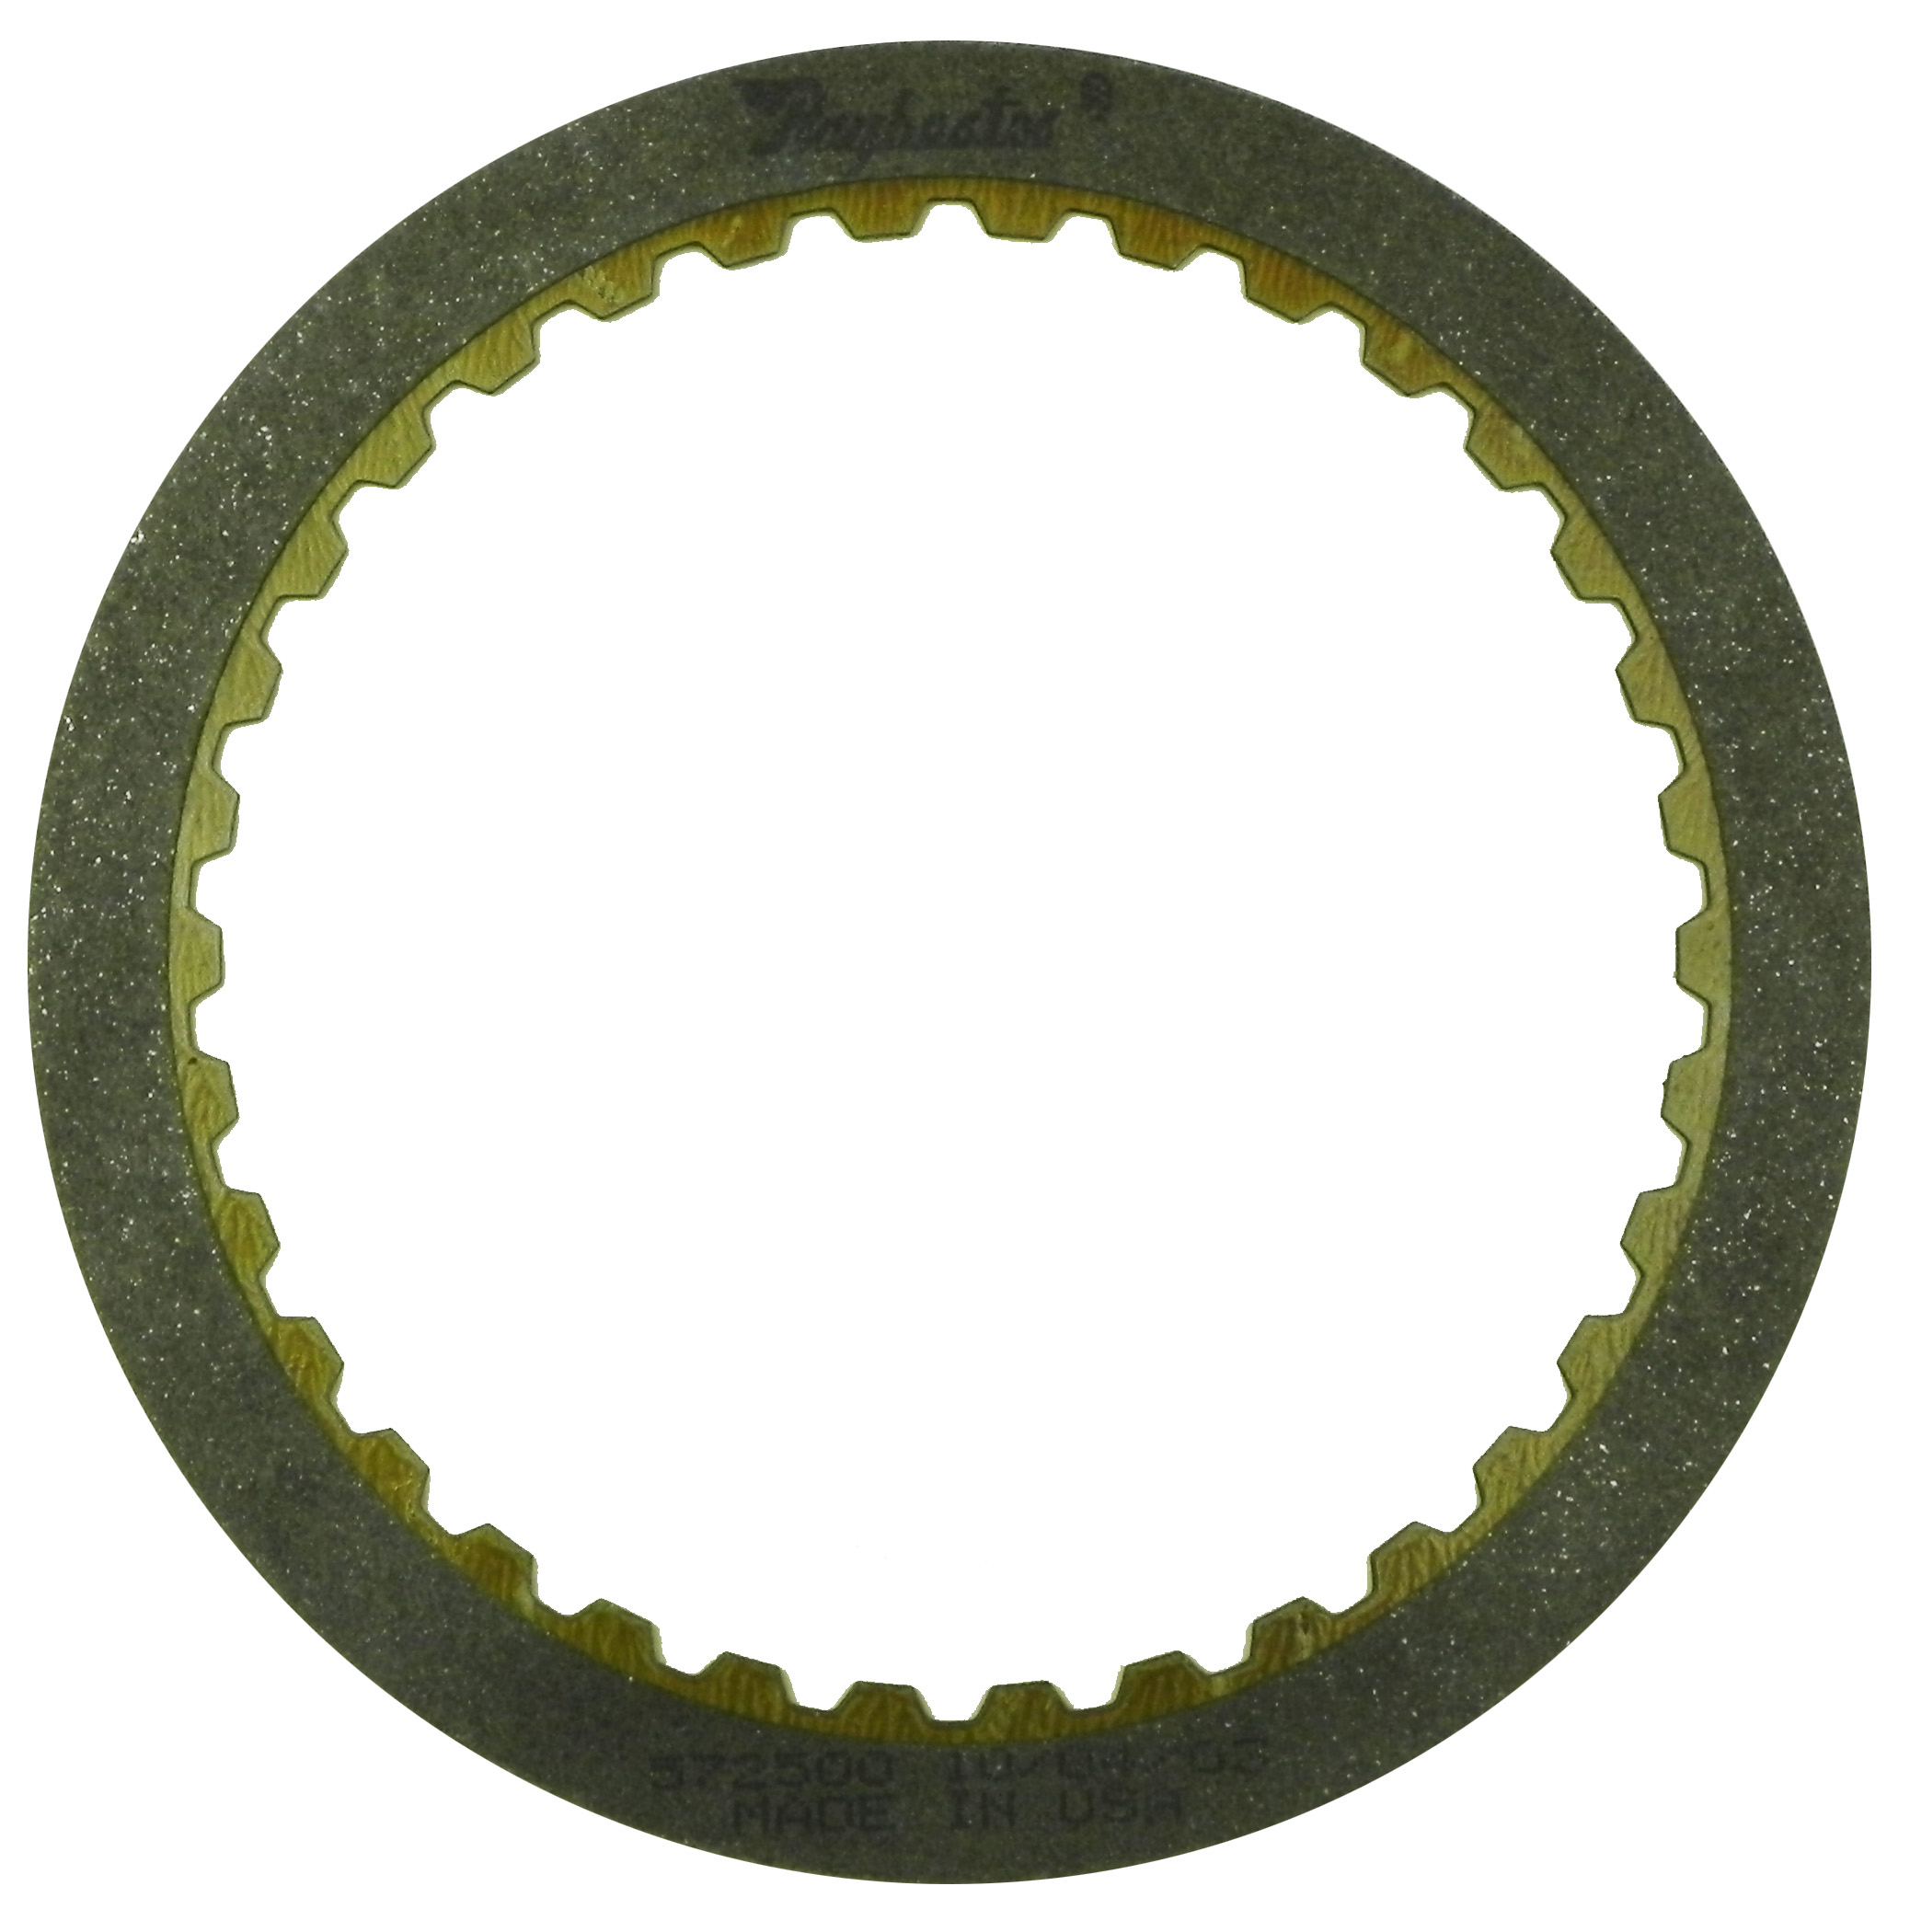 R572500 | 1989-2007 Friction Clutch Plate High Energy B1 Coast, C3 (LE) Underdrive High Energy